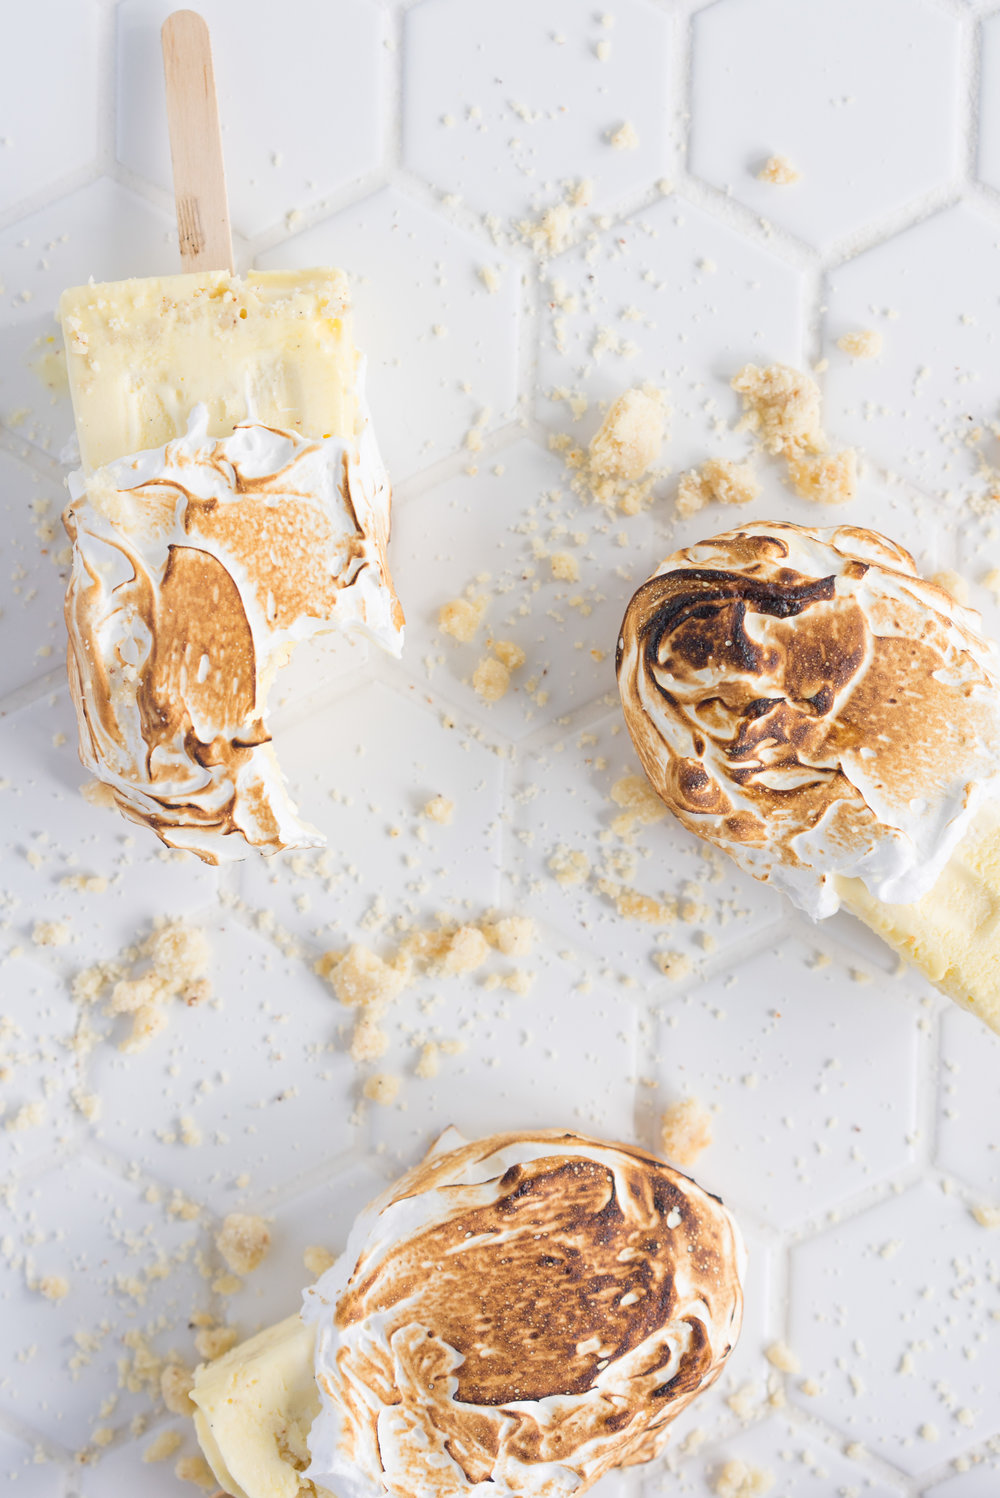 Lemon Meringue pie ice cream pops - if pie and ice cream had a baby, this would be it. The perfect combination of punchy lemon curd ice cream, pie crumb, and toasty meringue.